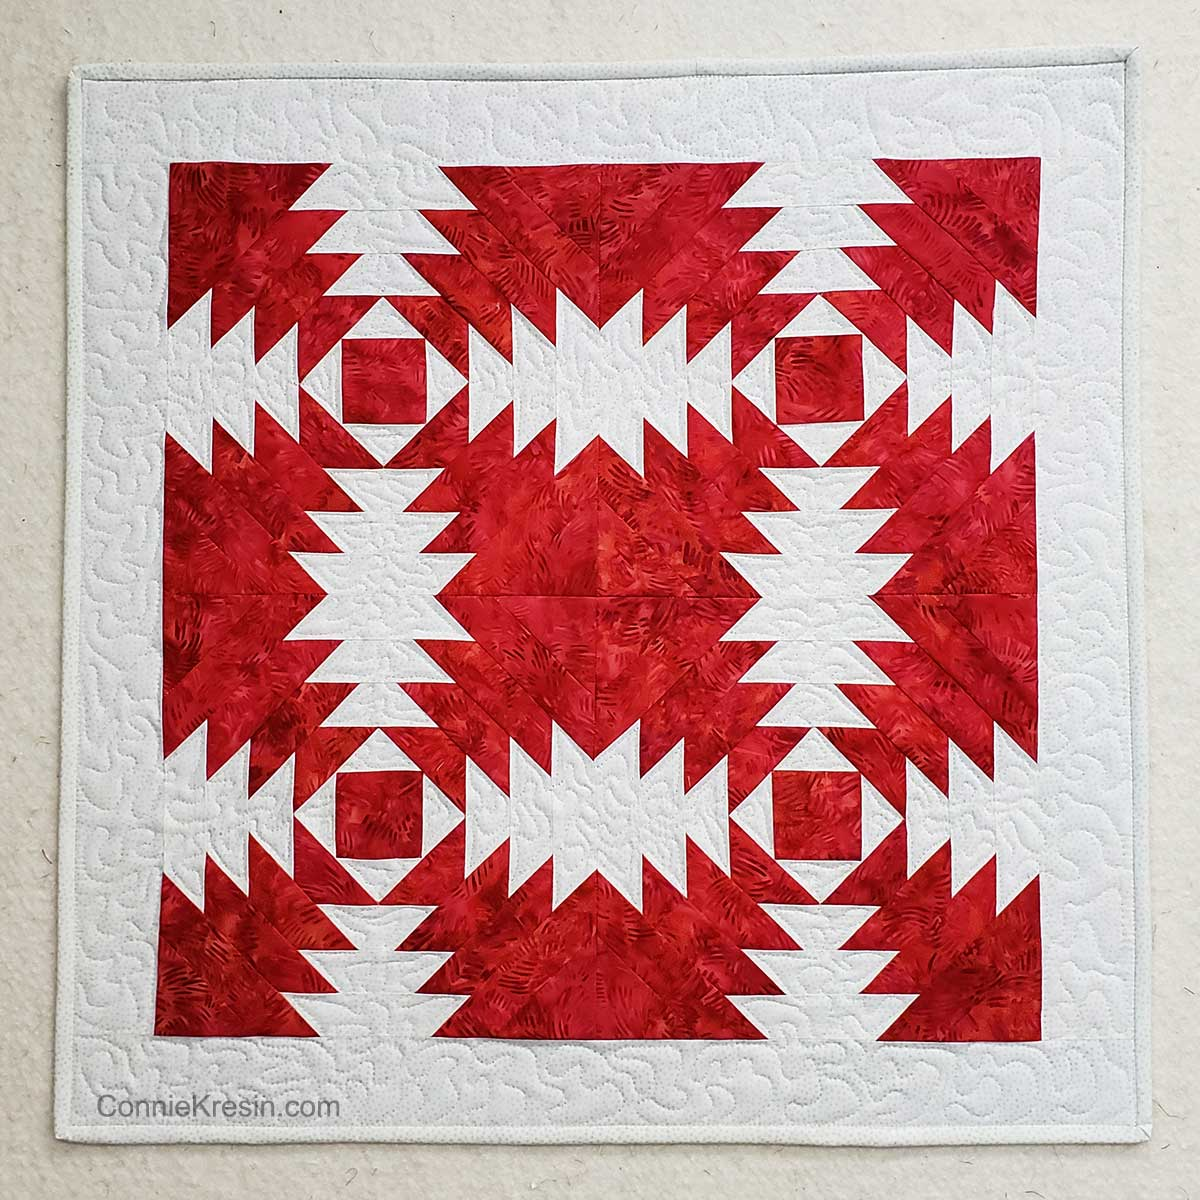 Fiery Pineapple batik wall hanging made with AccuQuilt cutter and die